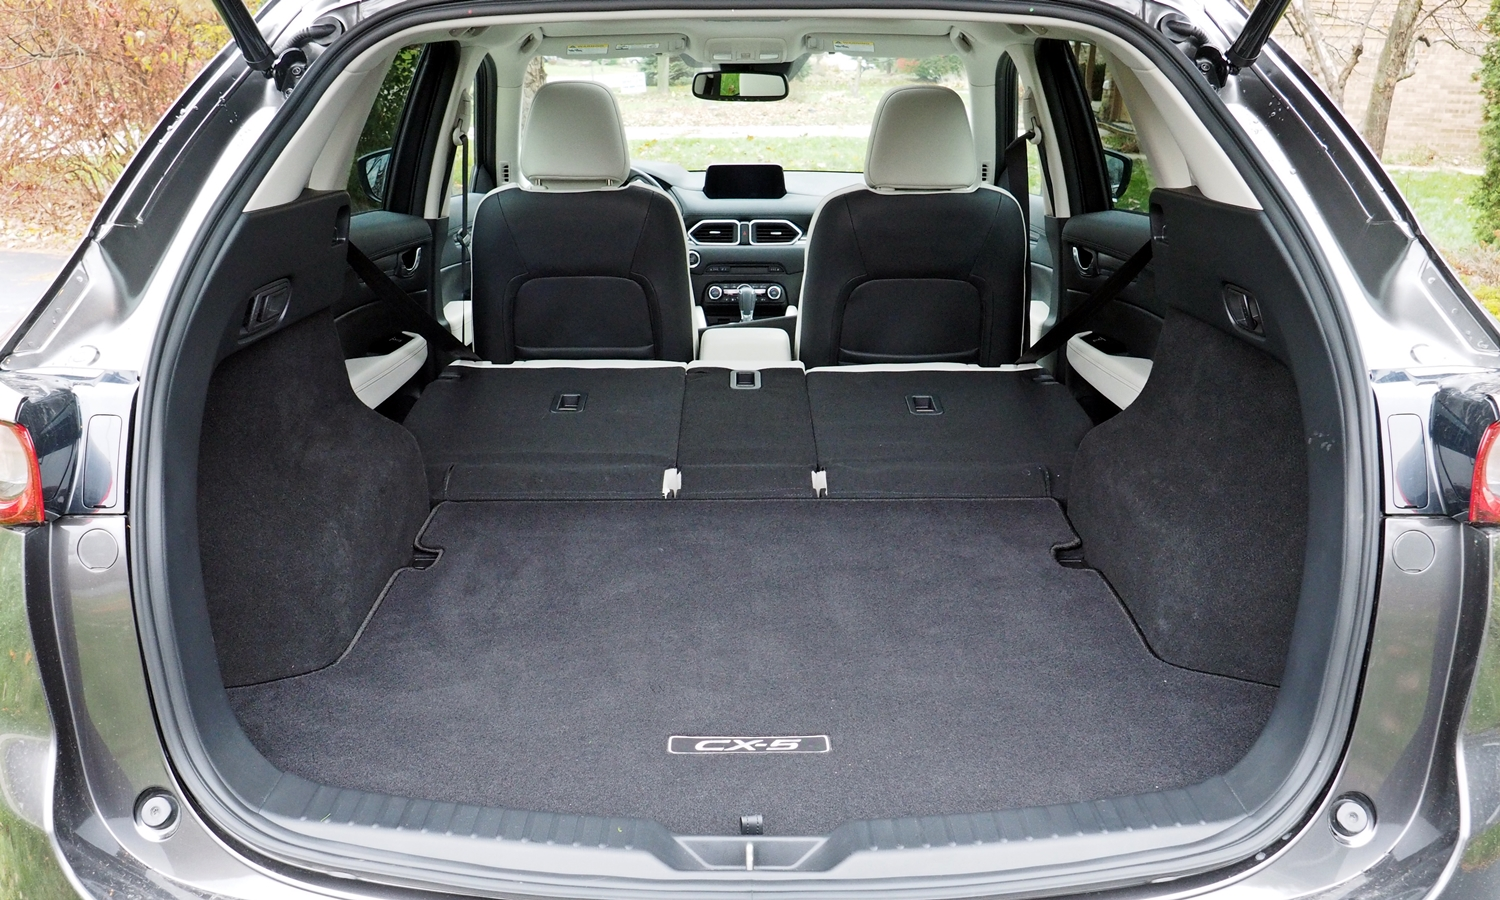 Mazda CX-5 Photos: 2017 Mazda CX-5 cargo area seats folded.